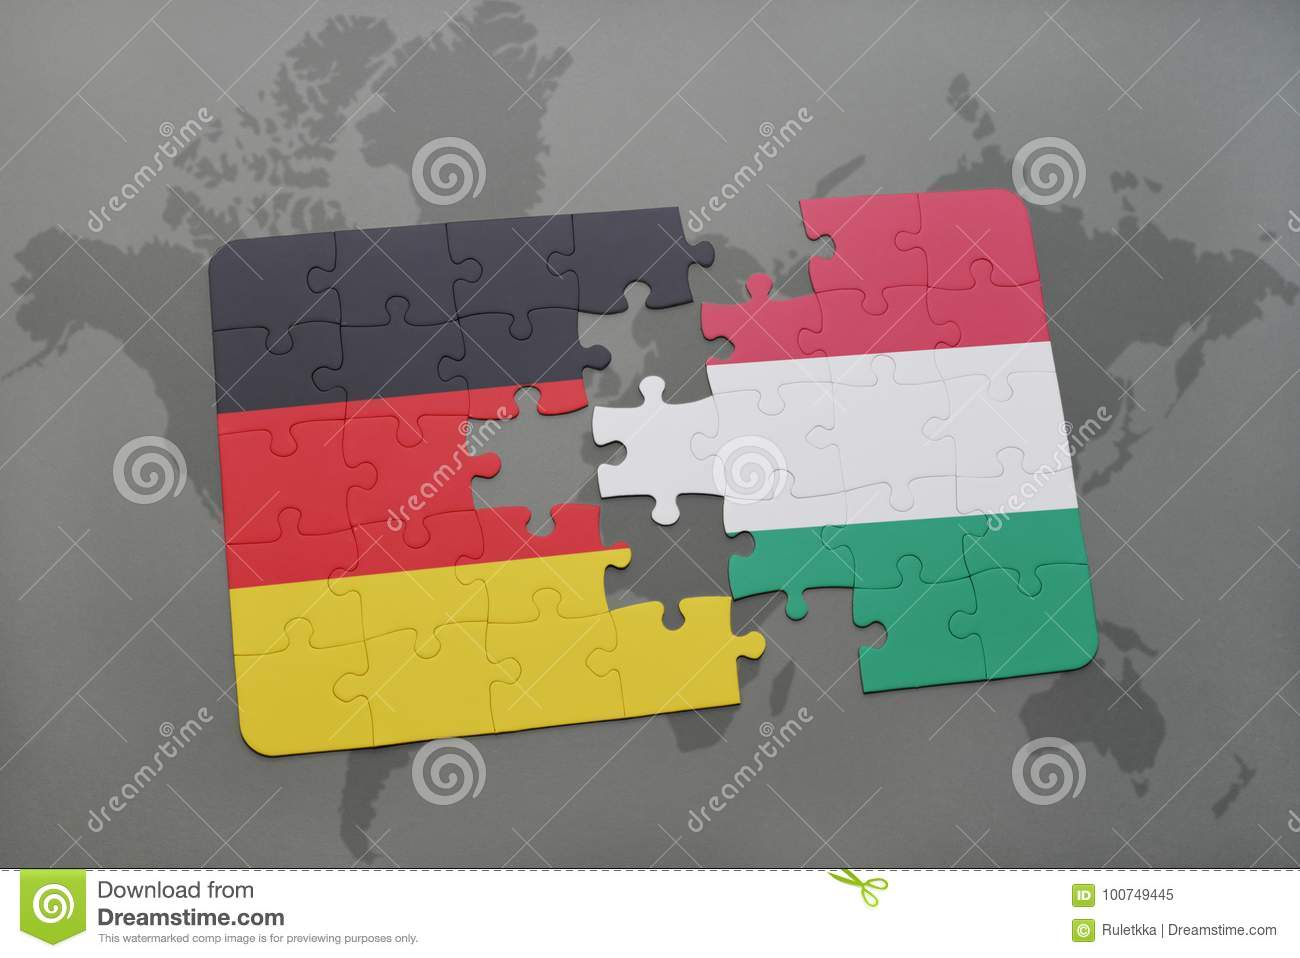 Map Of Germany And Hungary.Puzzle With The National Flag Of Germany And Hungary On A World Map